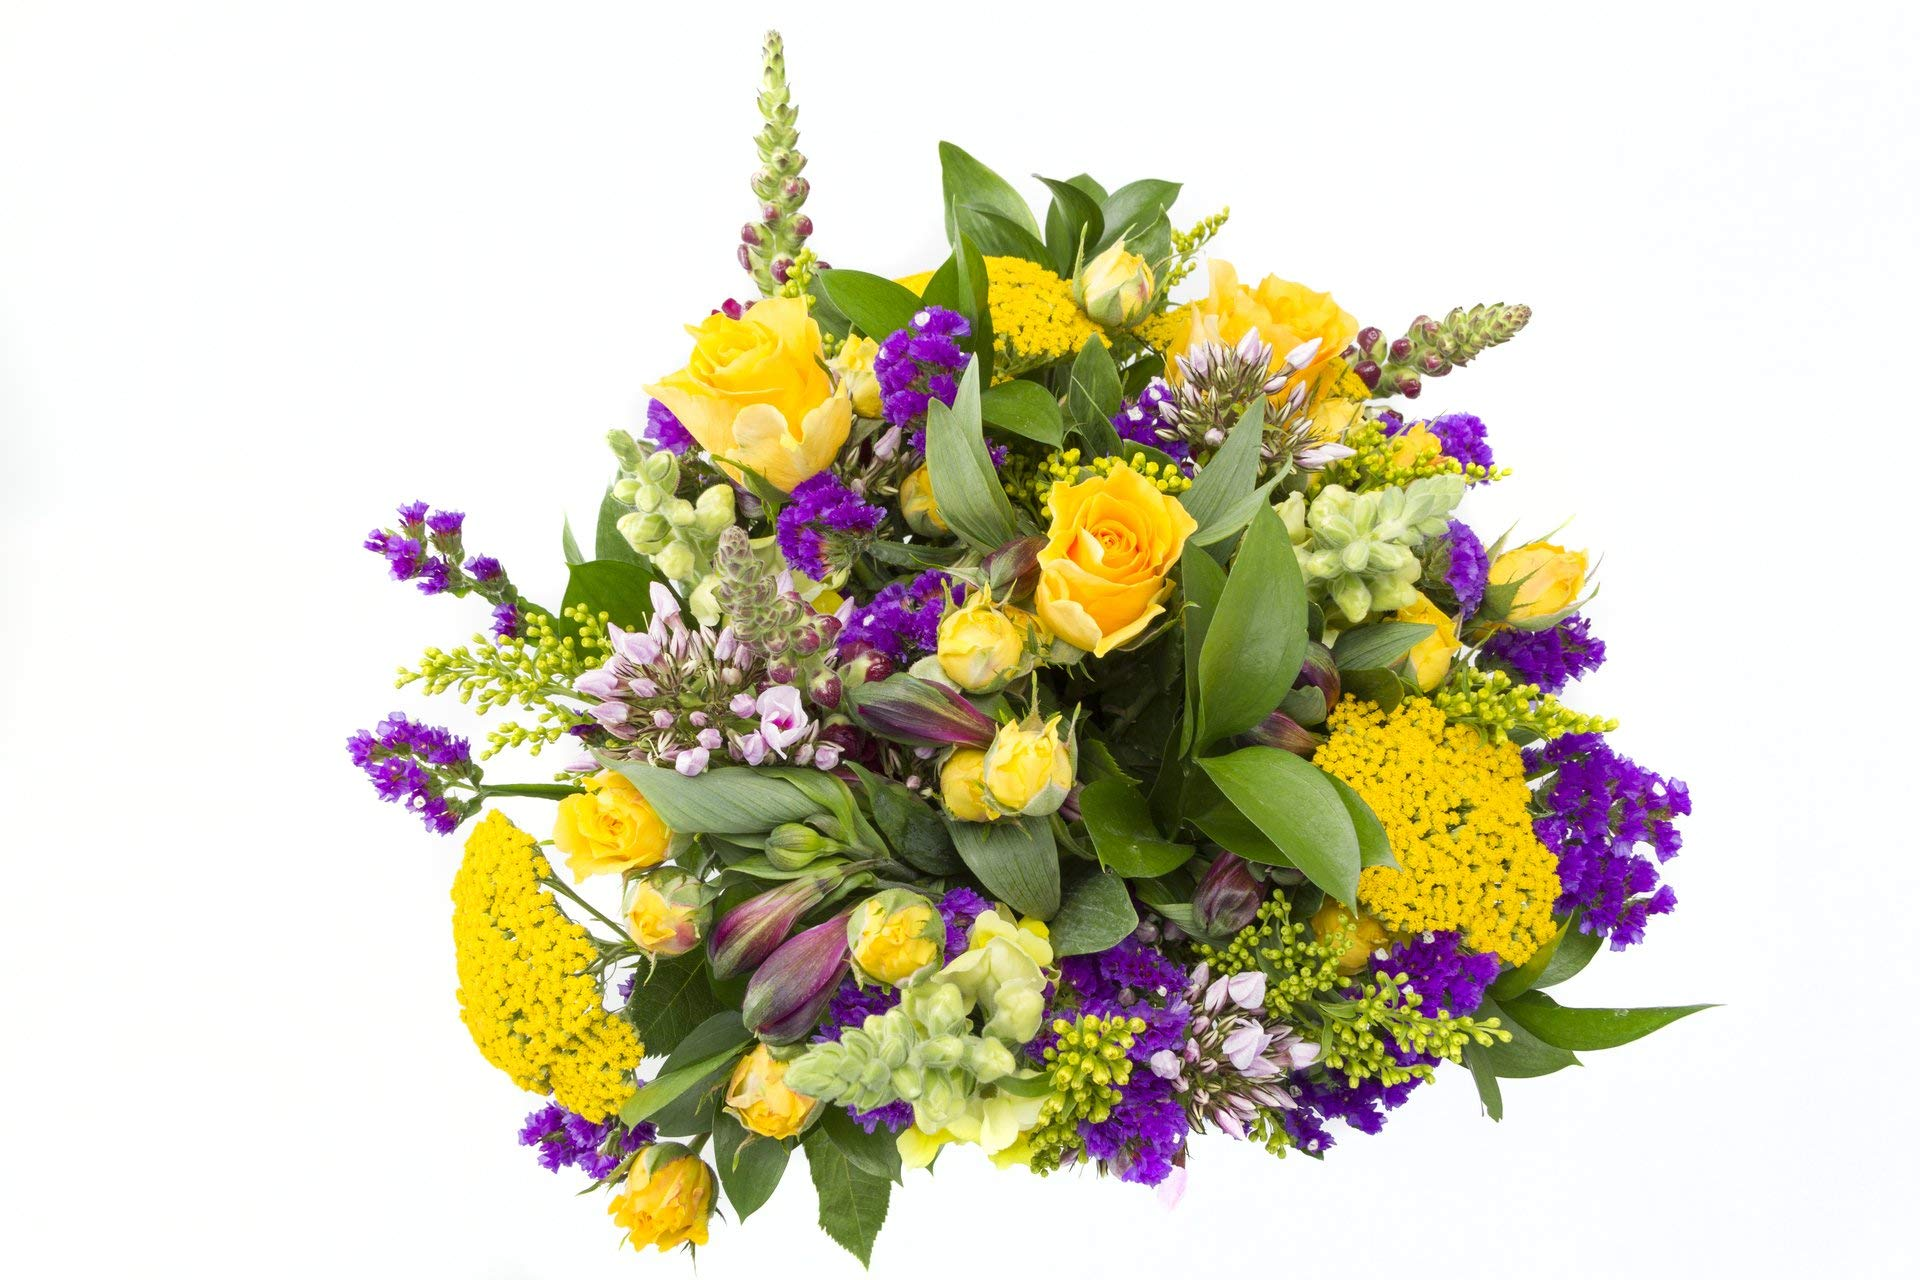 Chichi Party Purple and Yellow Flowers with Roses, Snapdragons, and More Sustainably Grown and Harvested, No Vase Included